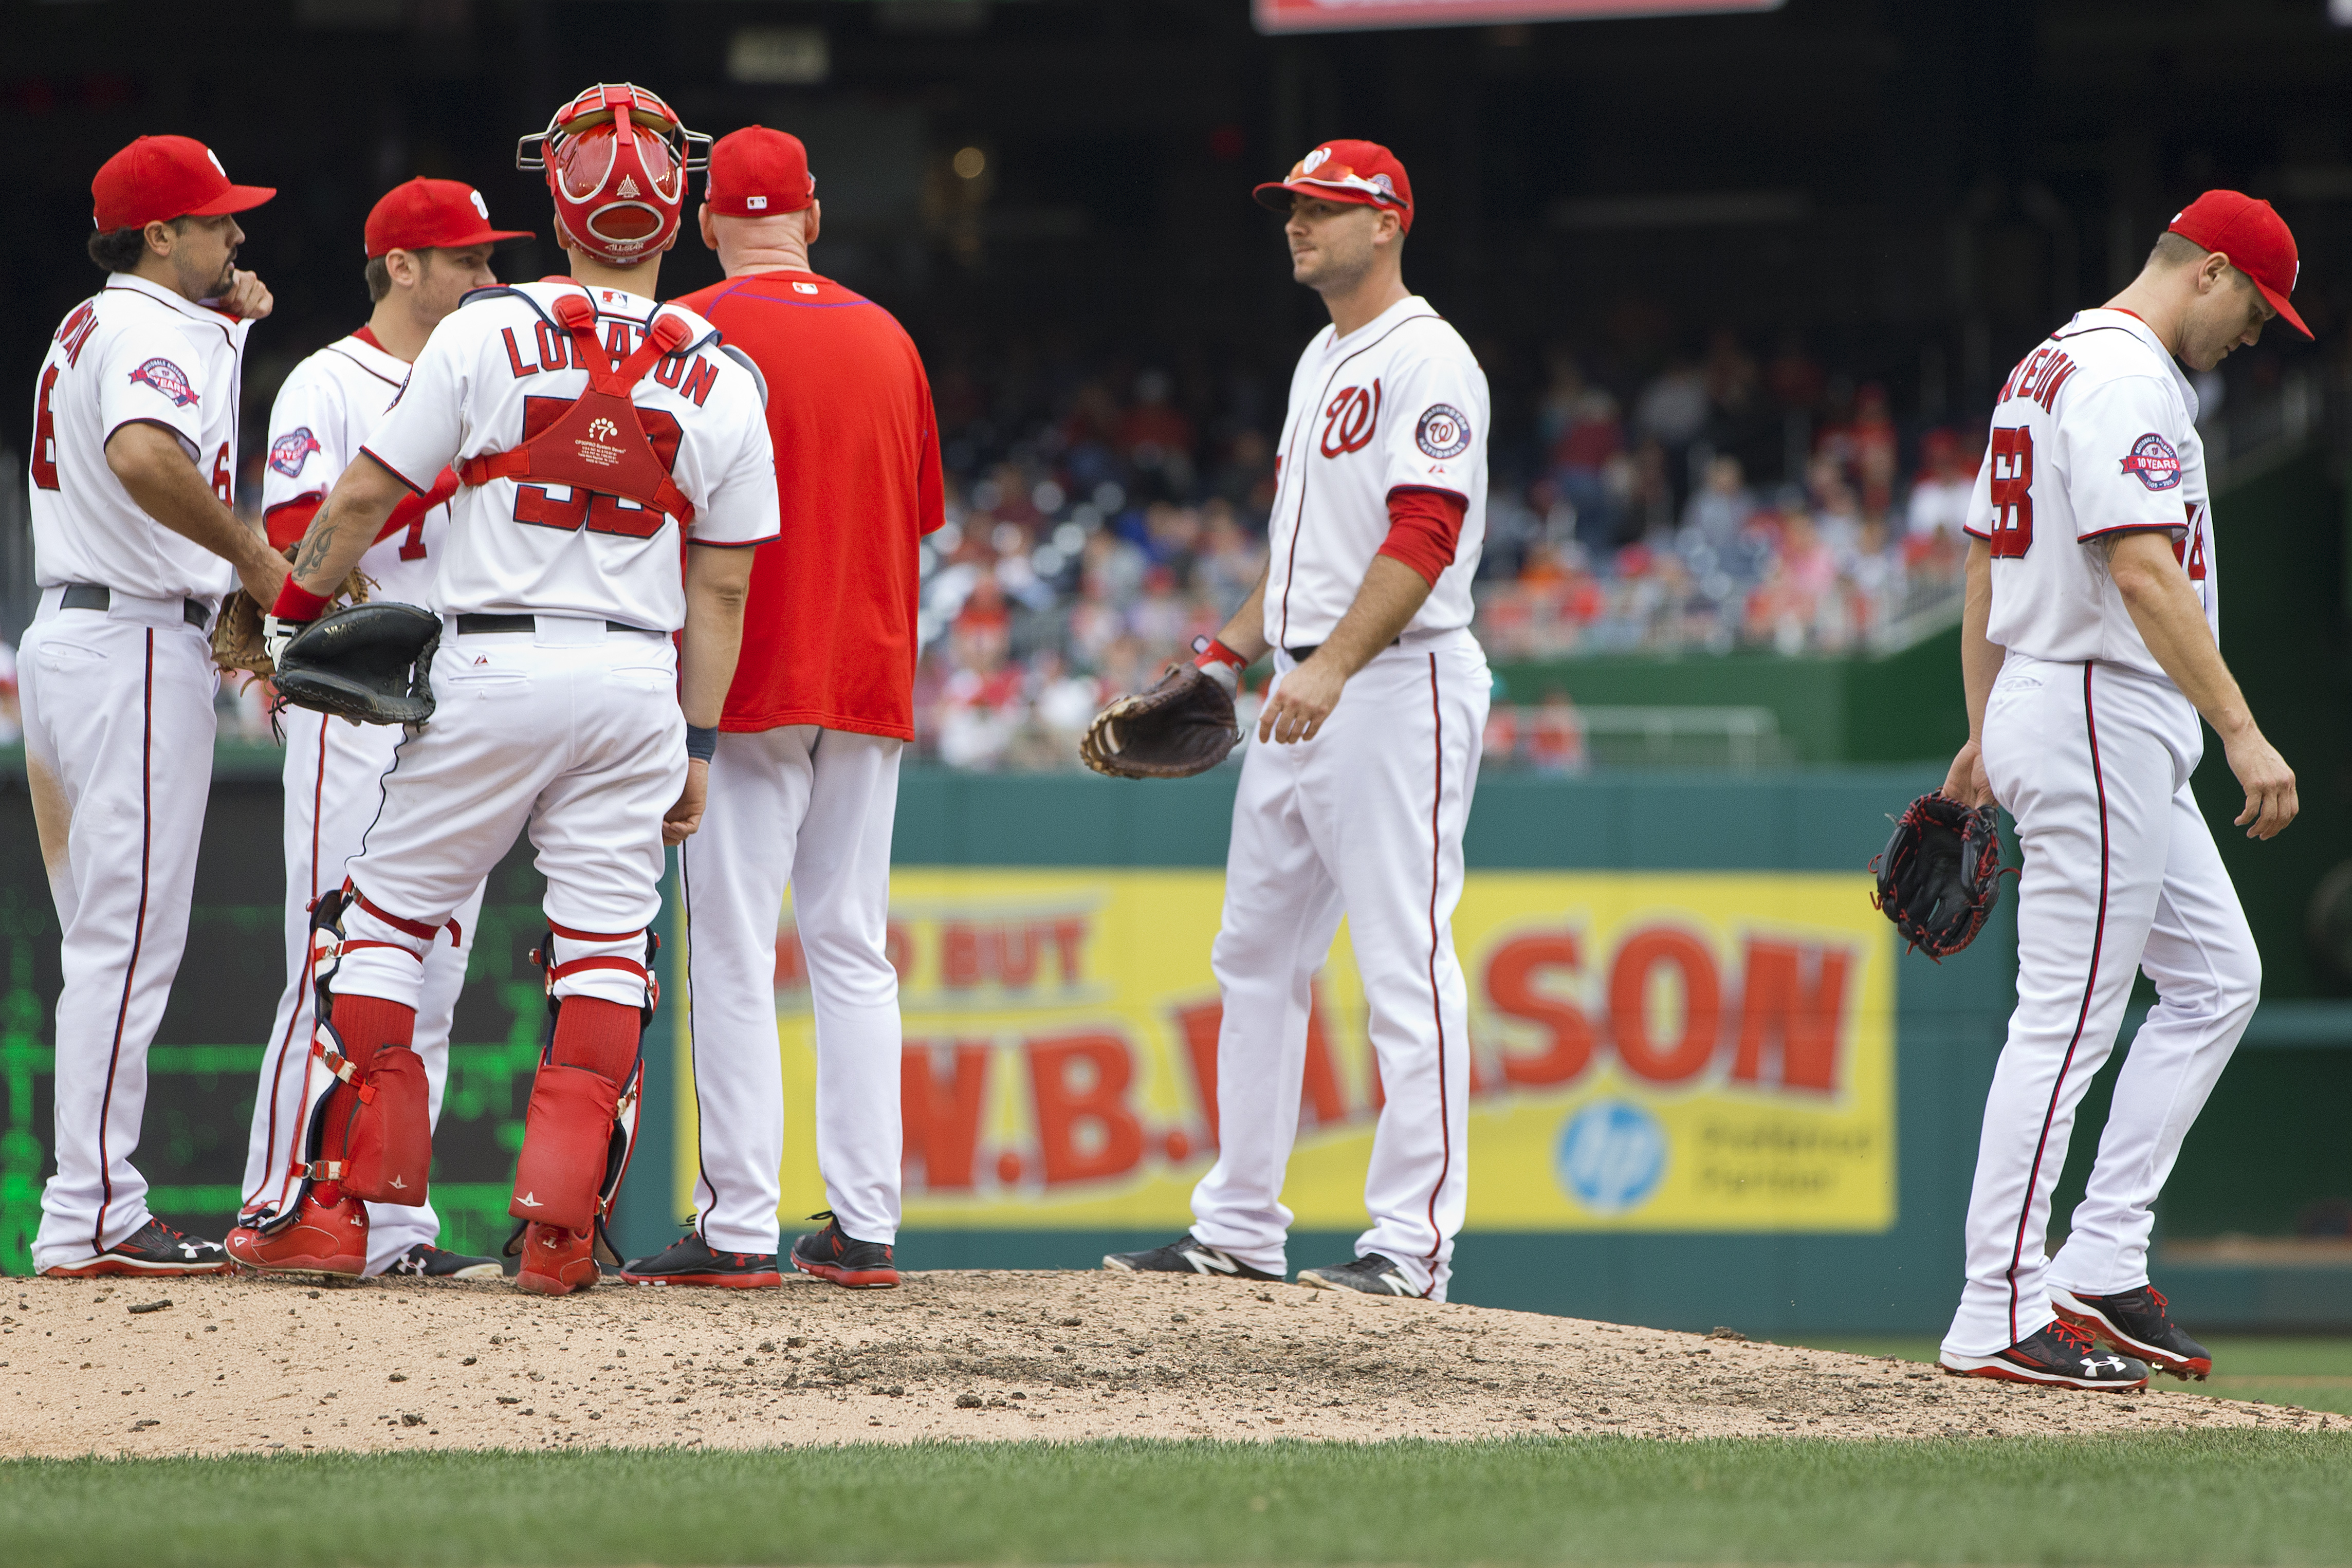 Washington Nationals relief pitcher Jonathan Papelbon (58) walks off the mound as he is relieved in the ninth inning of a baseball game against the Philadelphia Phillies at Nationals Park in Washington, Sunday, Sept. 27, 2015. Papelbon got into a dugout f